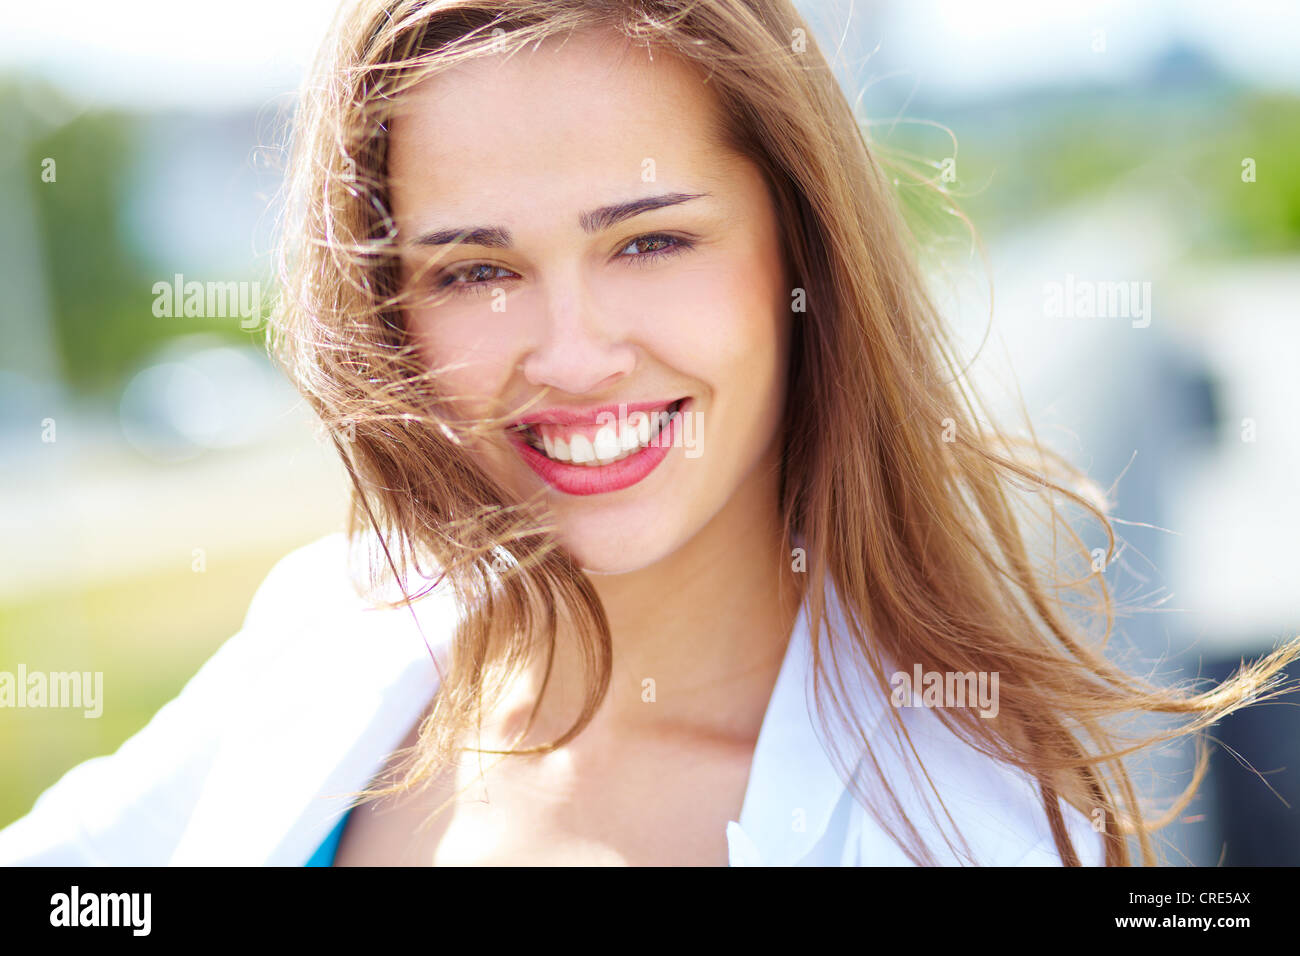 Close-up portrait of a cheerful beauty on a windy day - Stock Image